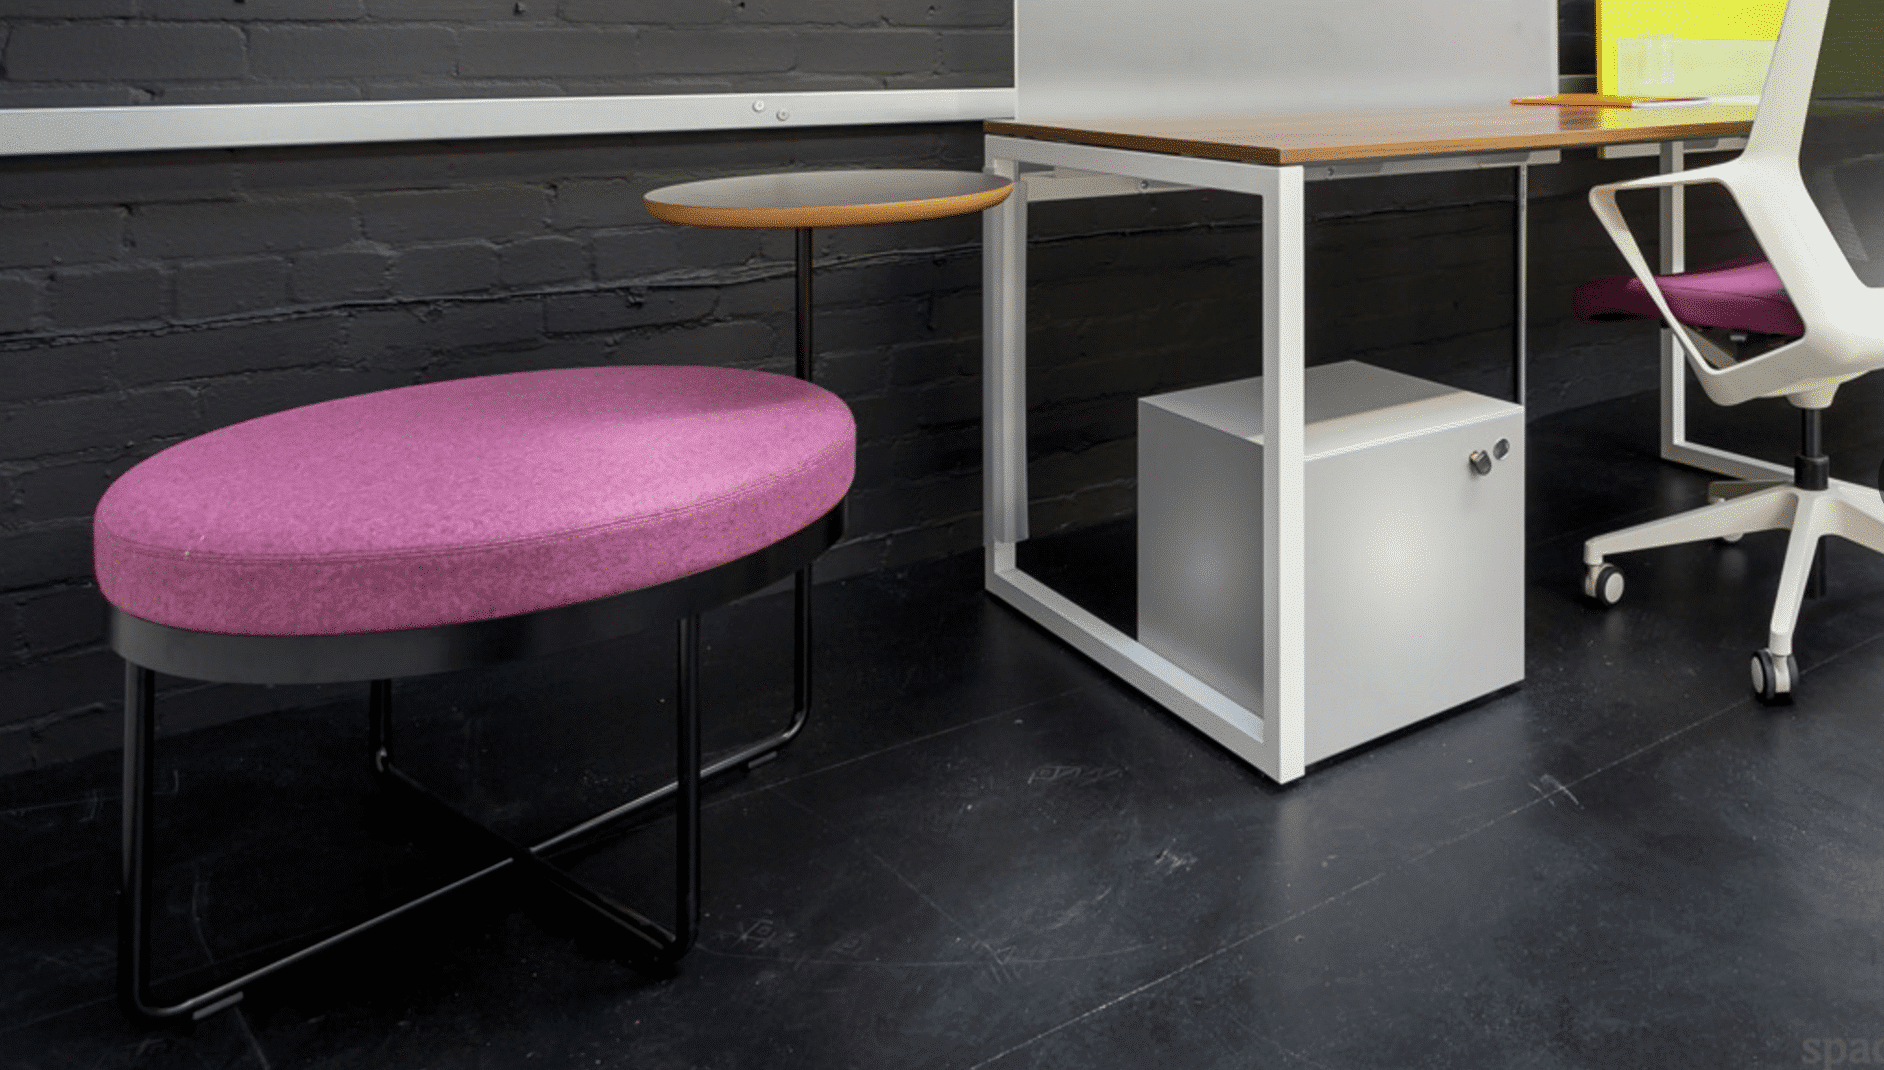 Spaceist-Shims-Seat plus table-showroom-image